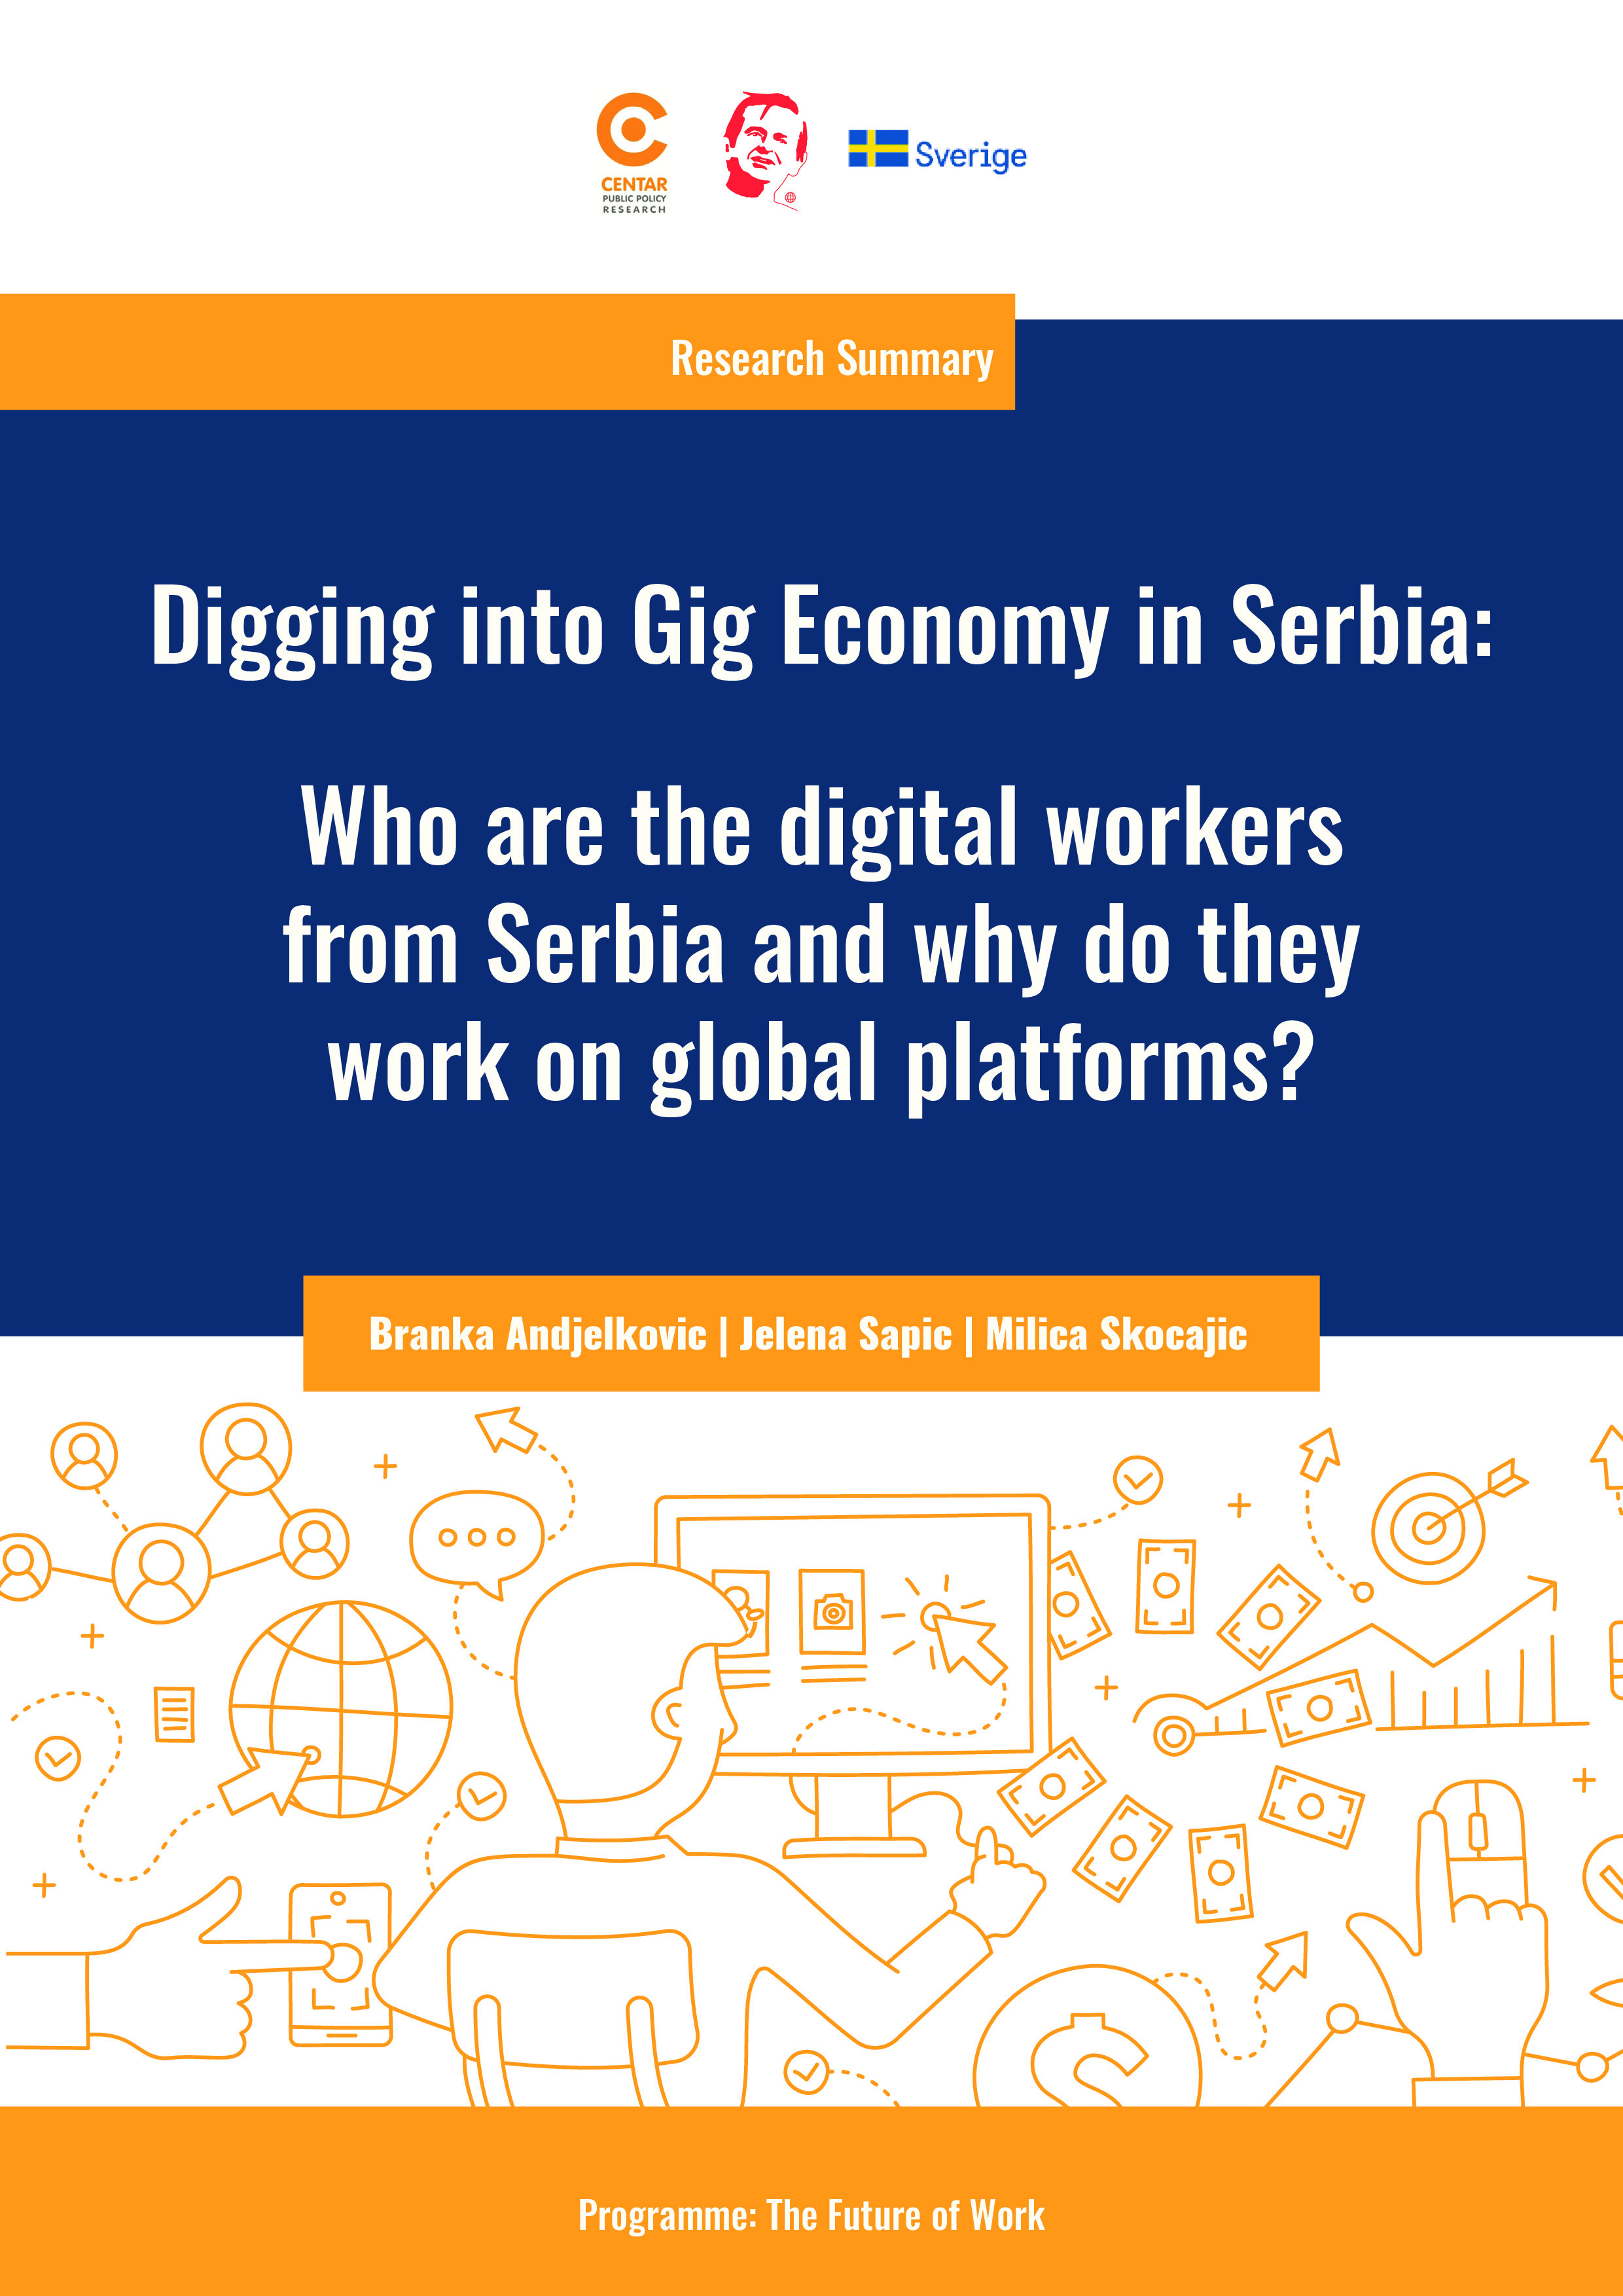 Digging into Digital Work in Serbia